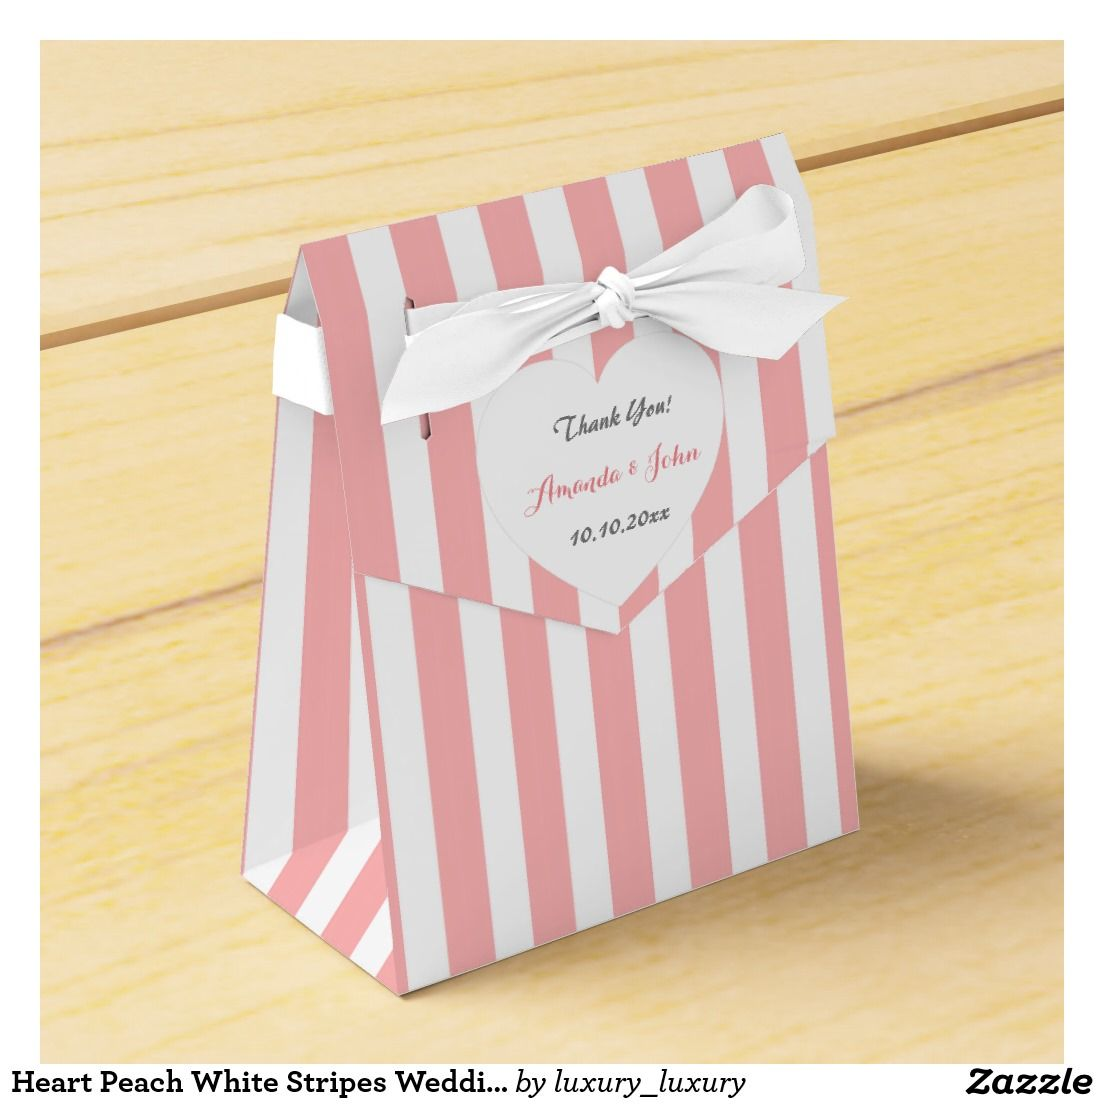 Heart Peach White Stripes Wedding Favor Thank You Wedding Favour Box ...